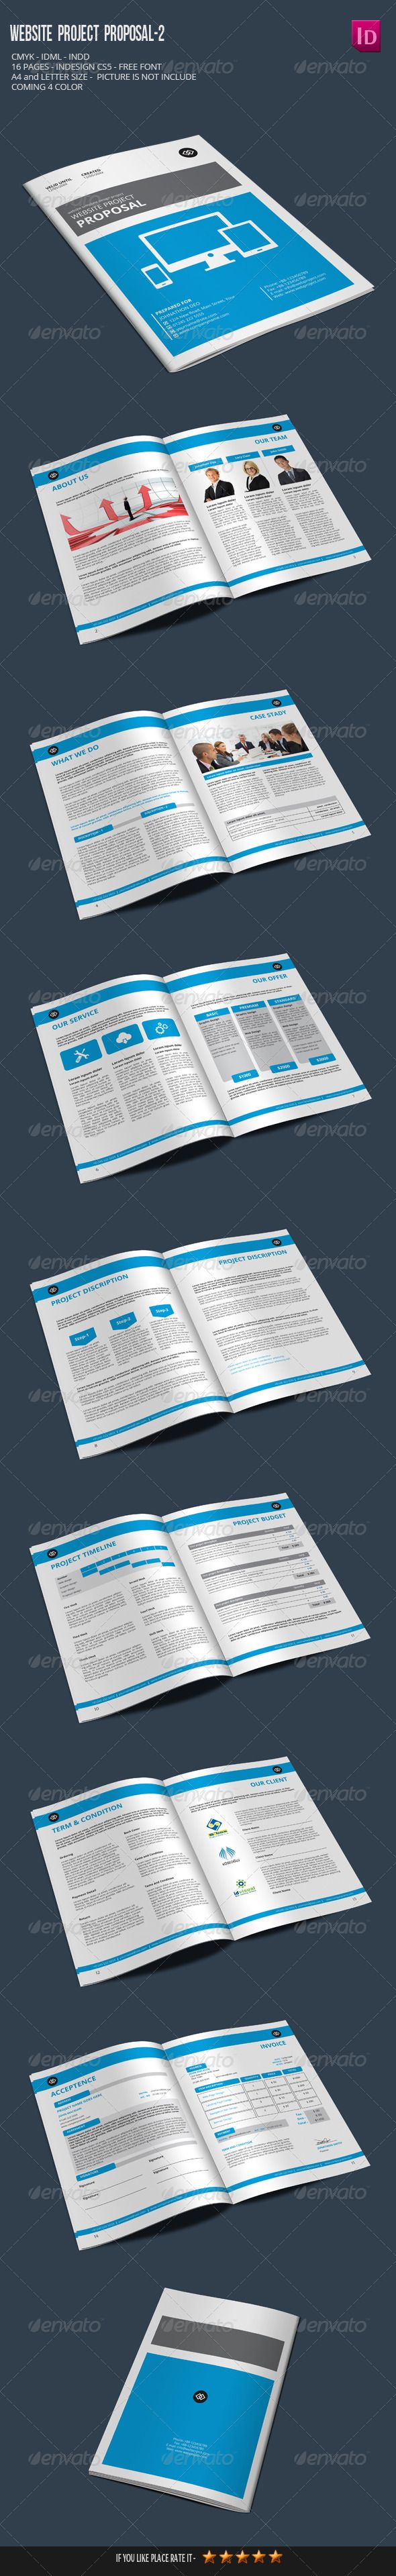 Website Project Proposal Print Project Proposal And